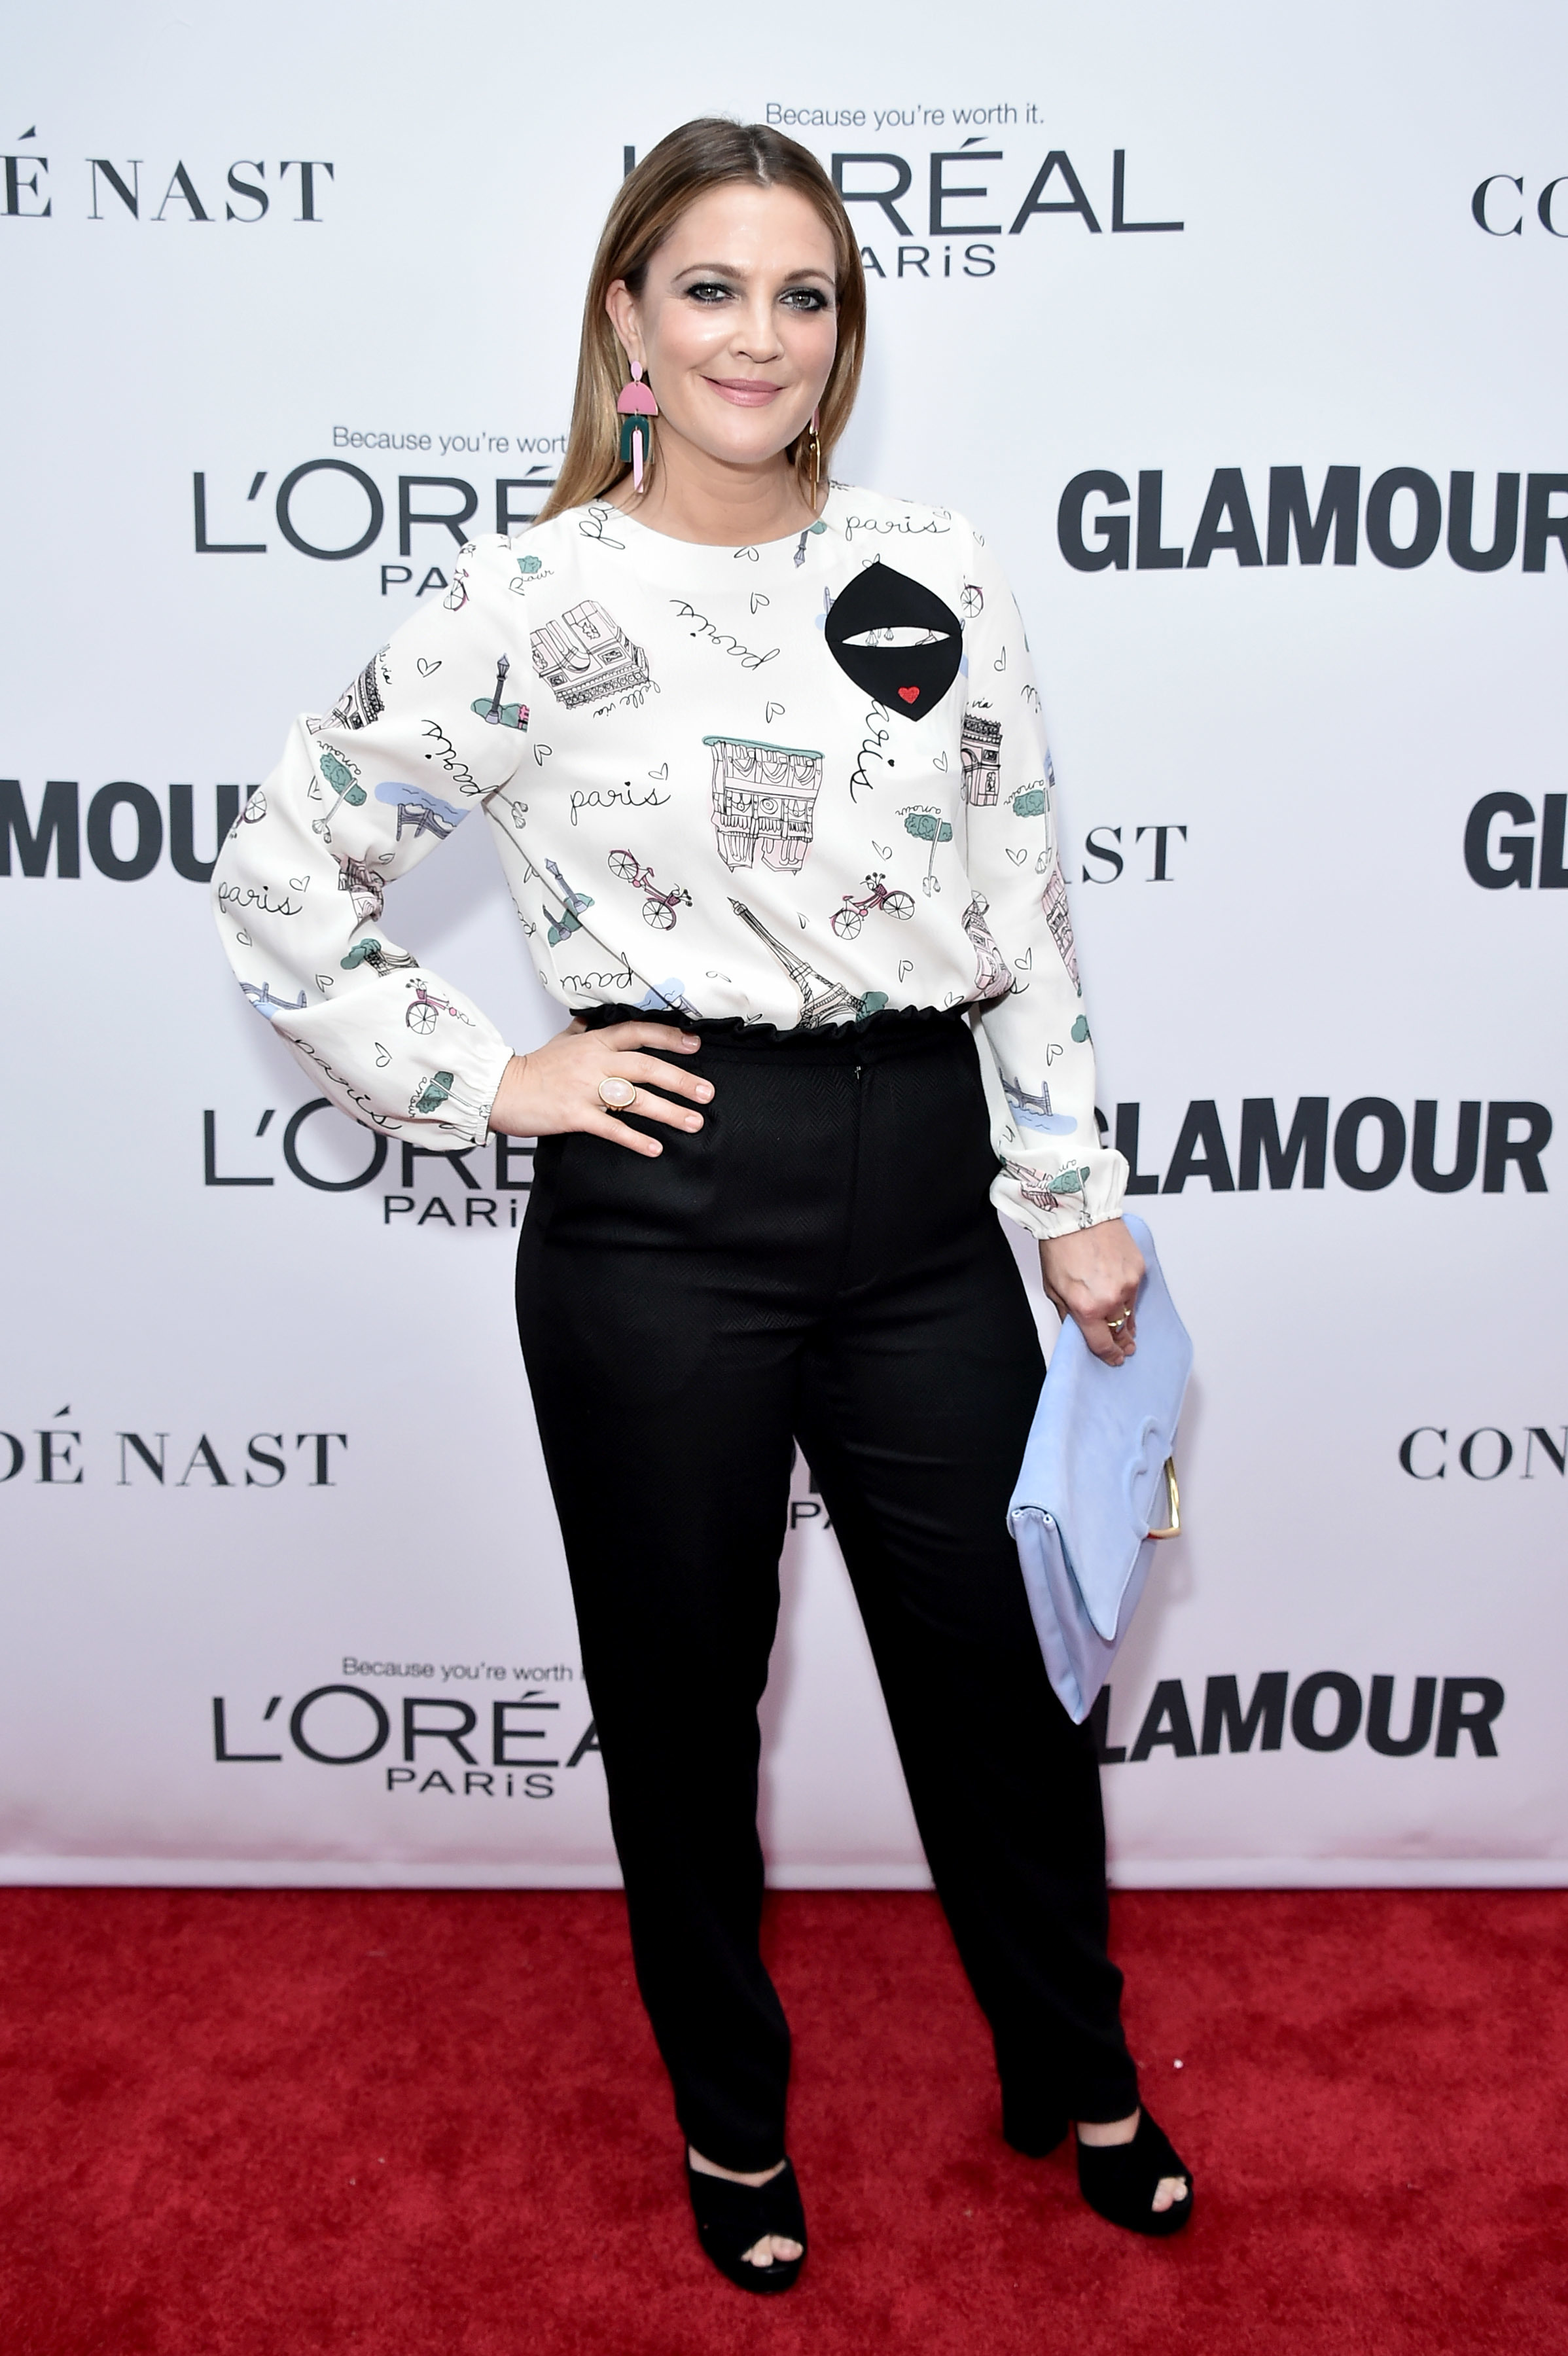 Drew Barrymore attends the Glamour Women of the Year Awards in New York City on Nov. 13, 2017.